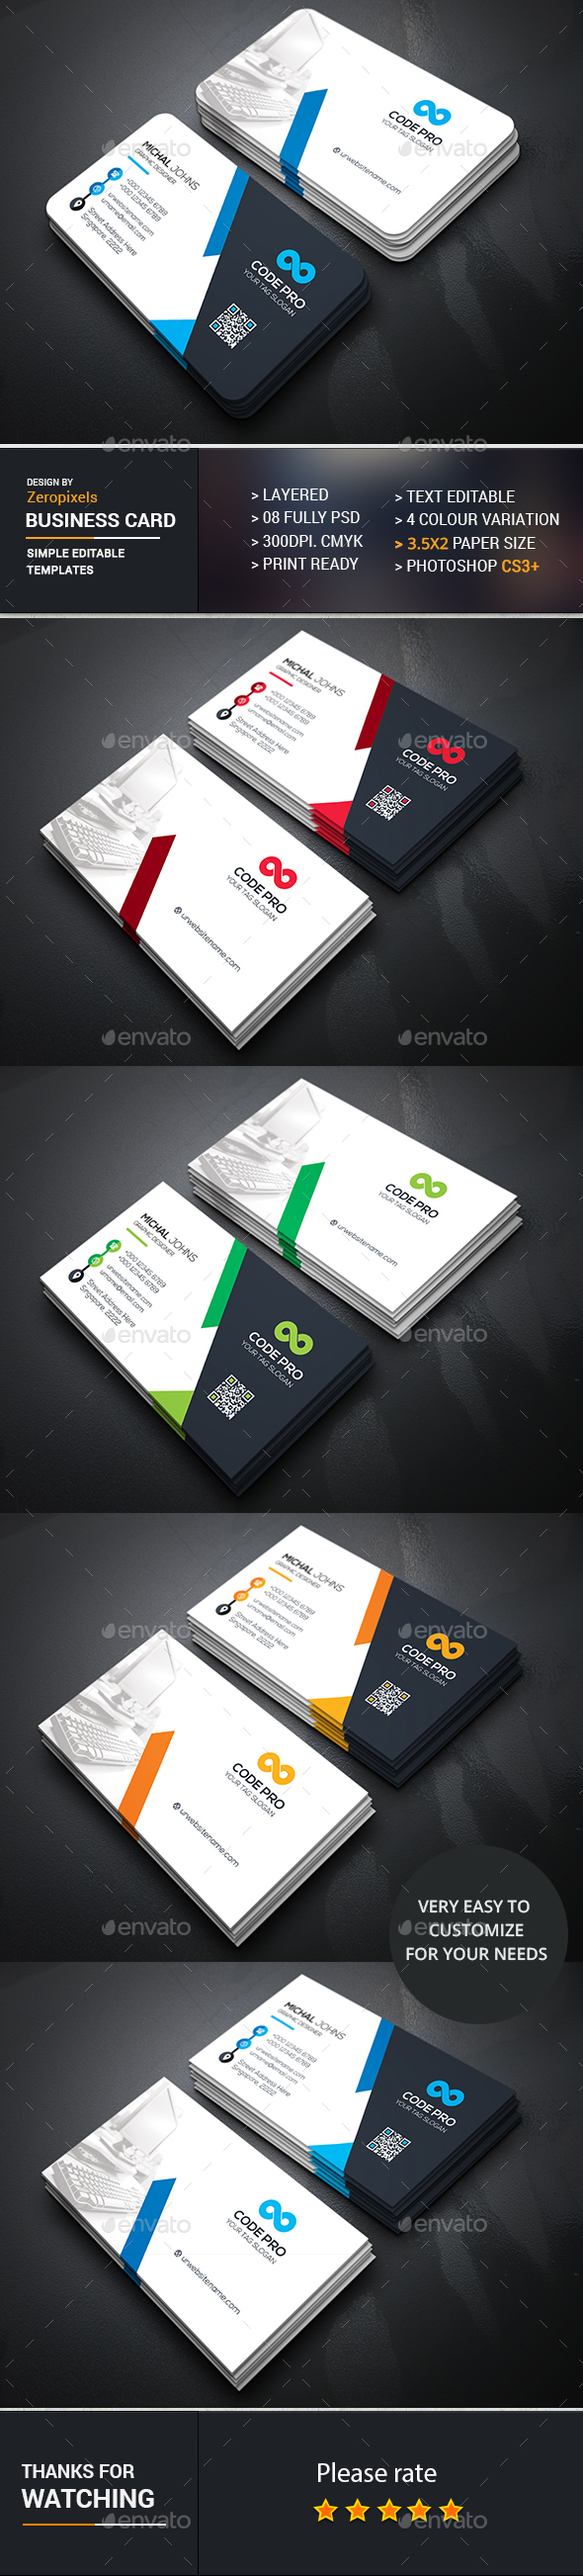 Corporate business card design business cards print template psd corporate business card design business cards print template psd flashek Choice Image